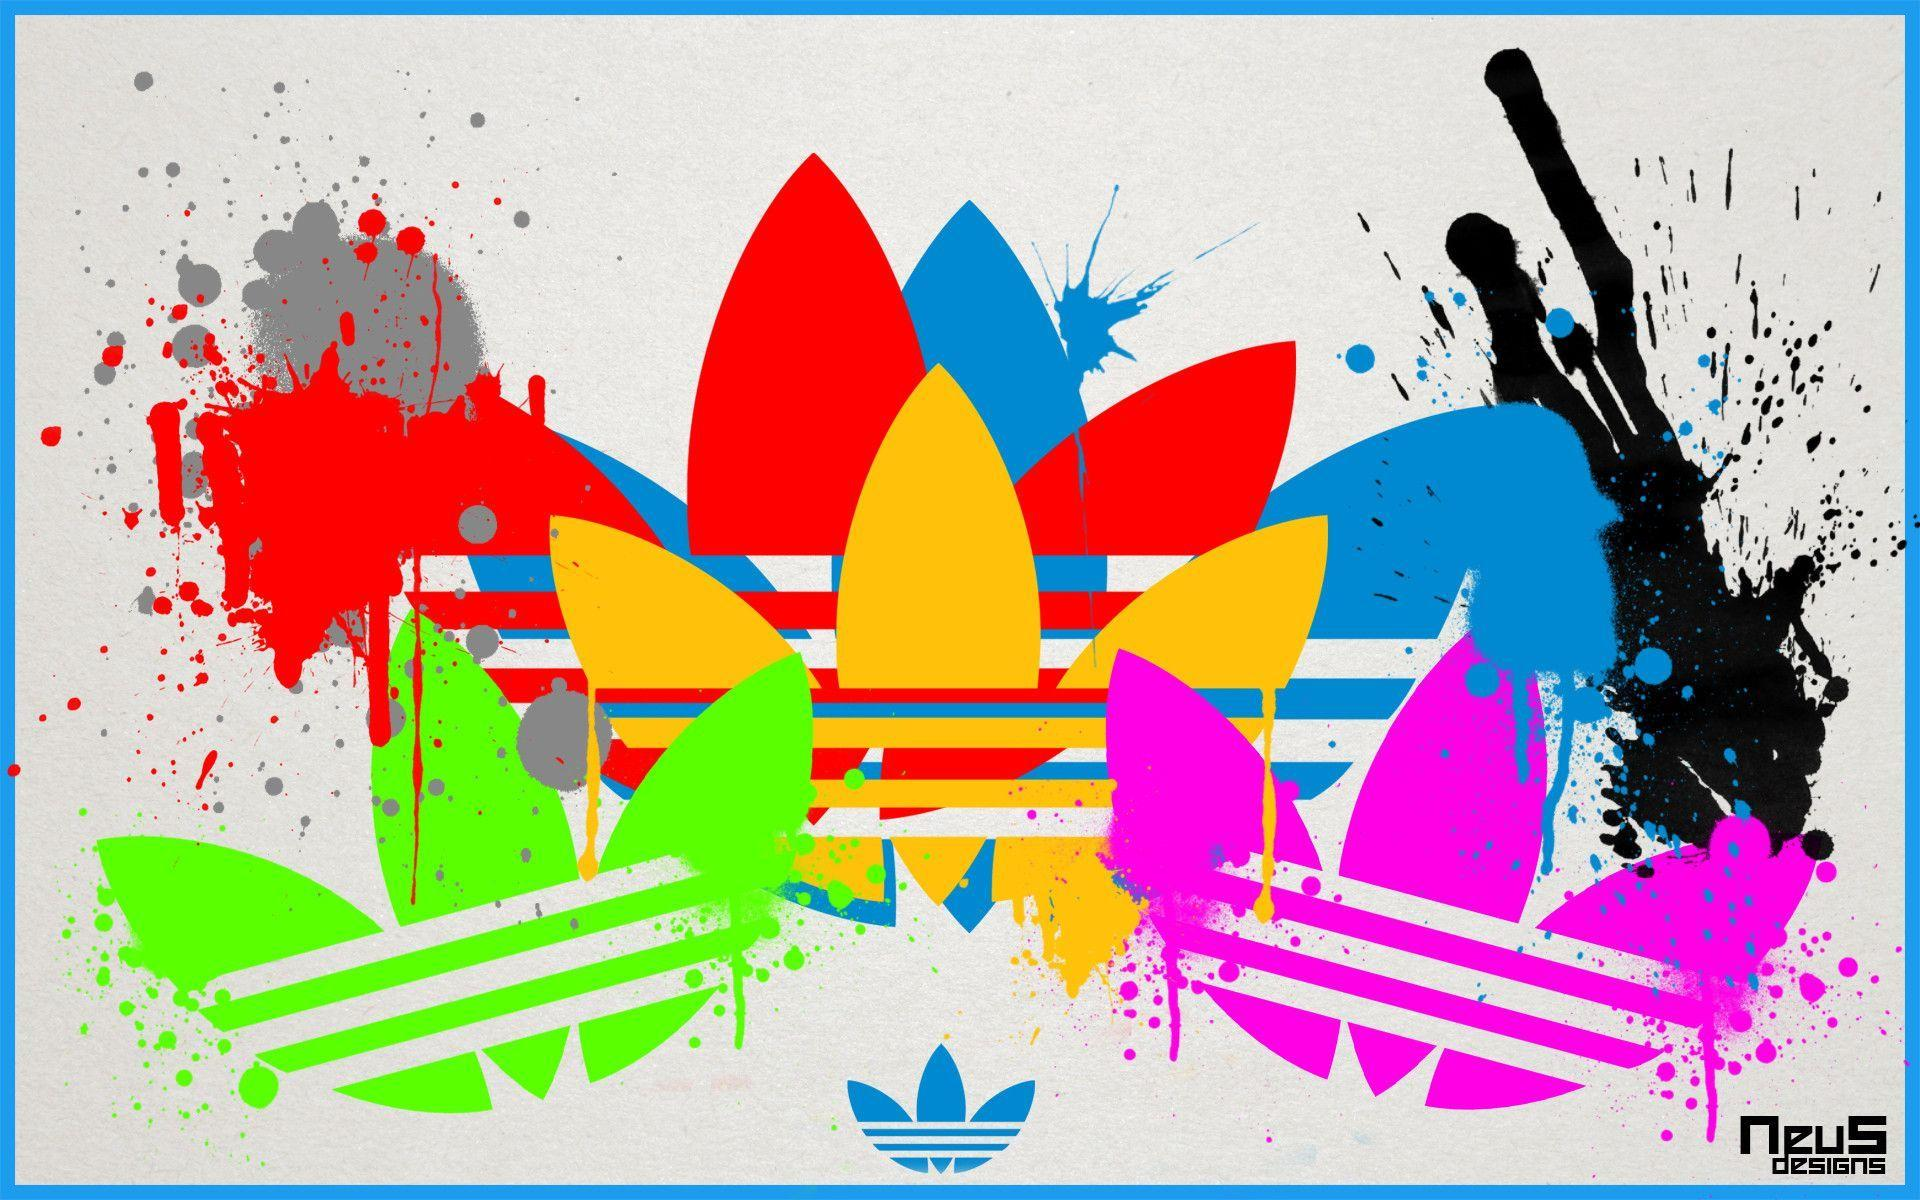 Adidas Original Wallpaper 71 110363 Images HD Wallpapers| Wallfoy.